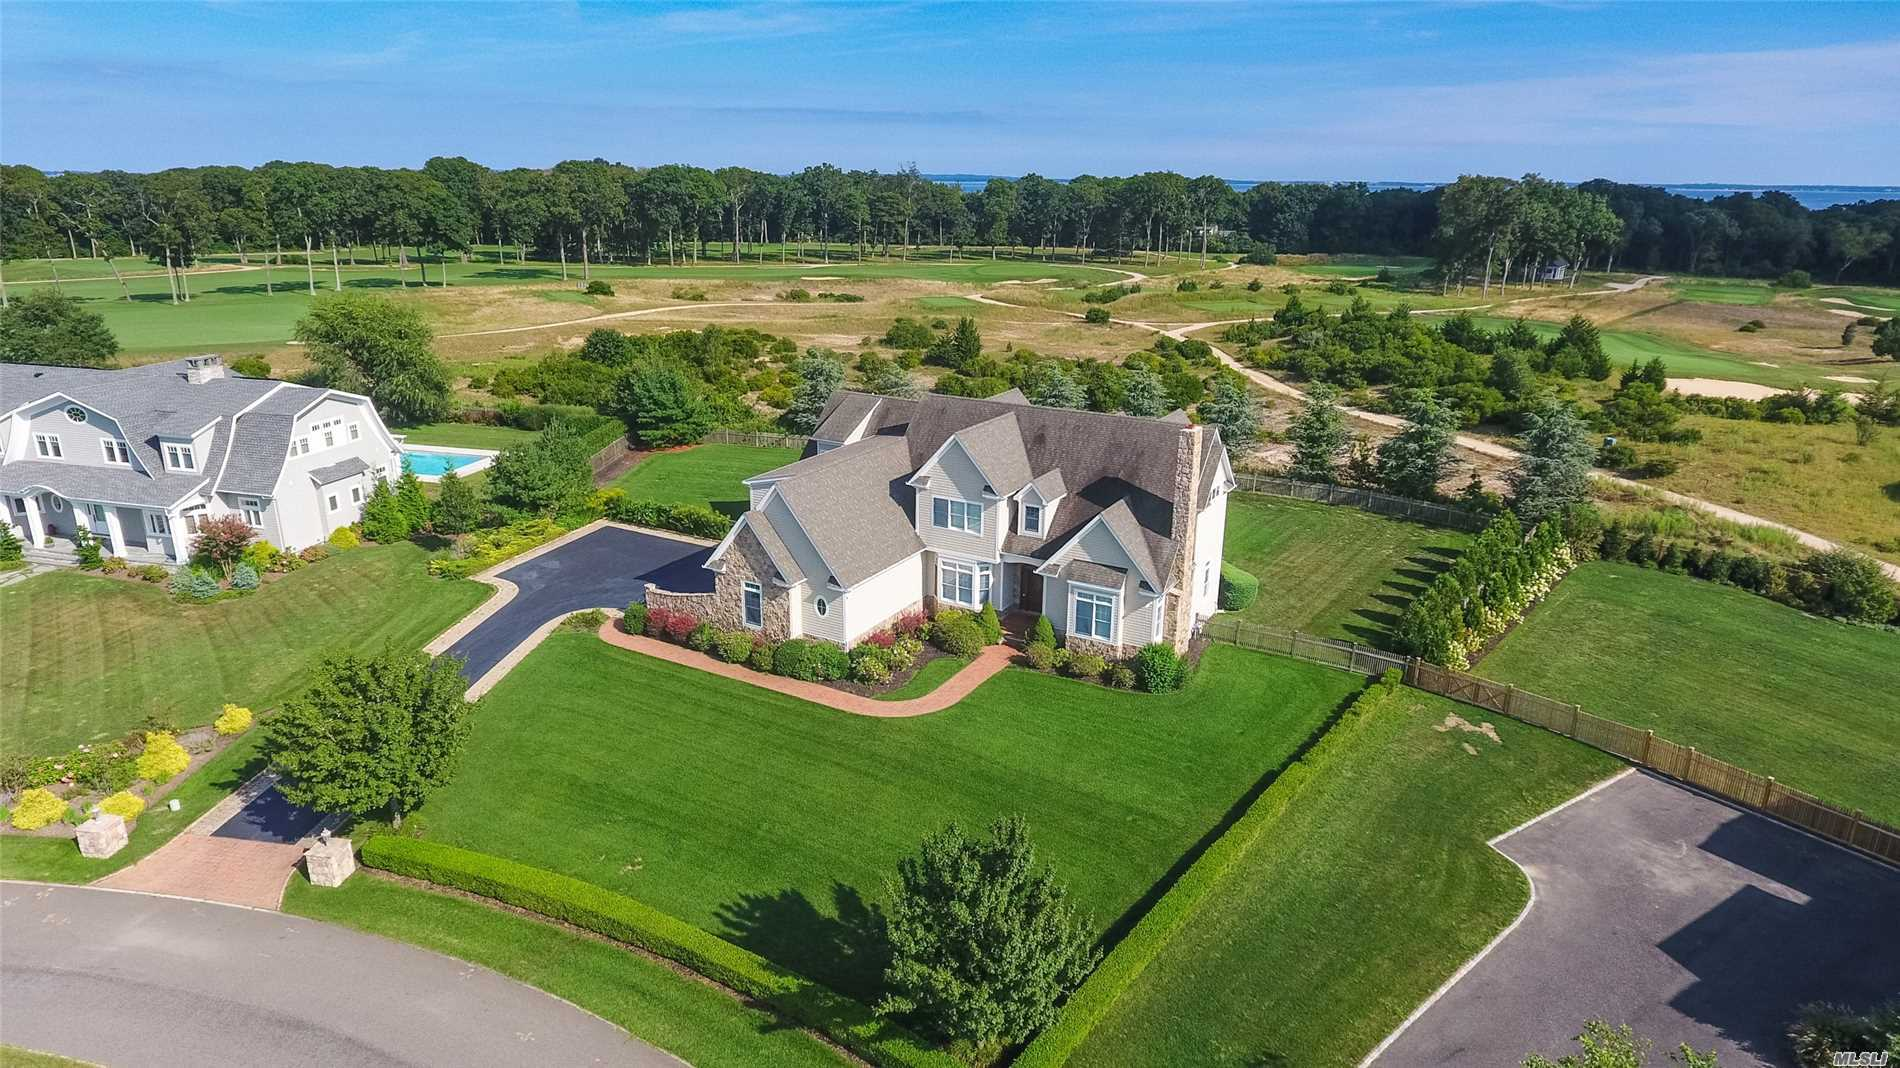 Stunning Architectural Delight Overlooking Golf Course In Private, Prime Golf Course Community. Move In This Custom Home With Incredible Fine Detail & Mill Work. Great Entertaining Flow, Gourmet Kitchen Opens To Great Room, Beautiful Hardwood Floors, 5 Bedrooms, 3.5 Baths, Room For Guests, Gym, Heated Salt Water Pool, Much More!